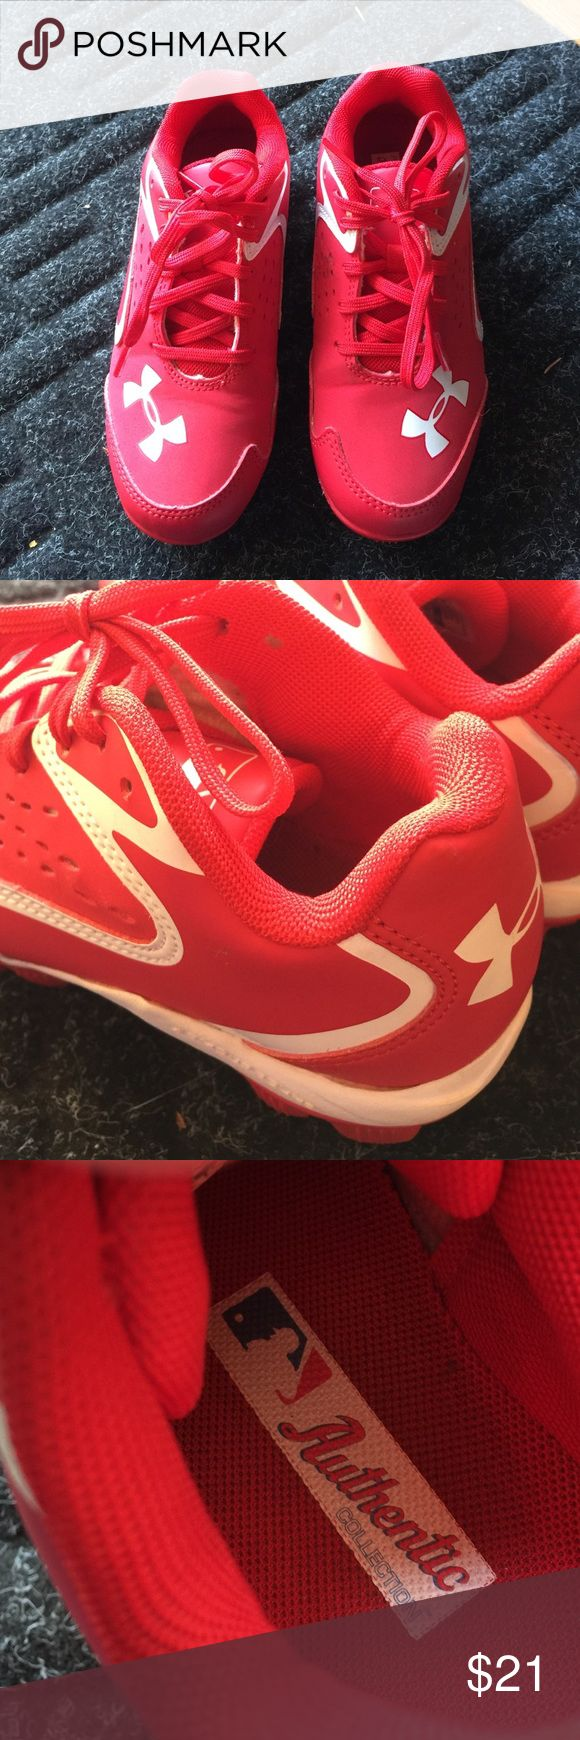 Under Armour kids MLB cleets *LIKE NEW* Size 12K Under Armour MLB red cleets. Worn around the house but never outside. Like new condition! Under Armour Shoes